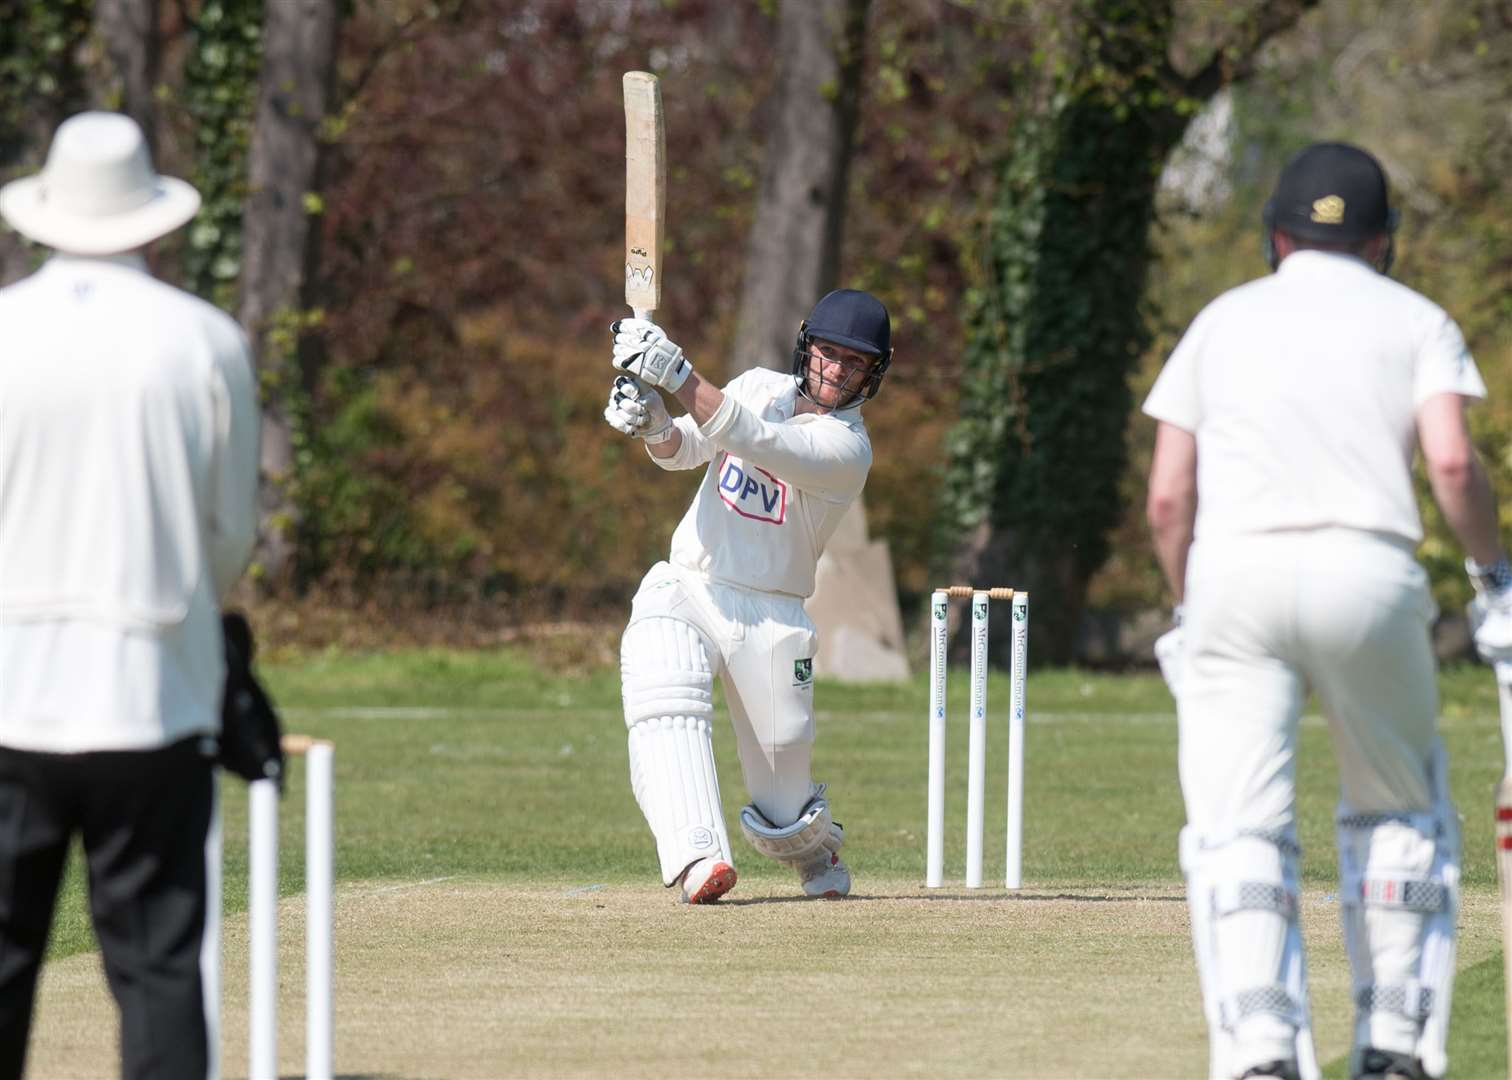 Sam Rippington was in good form with the bat for Burwell & Exning. Picture: Mark Westley